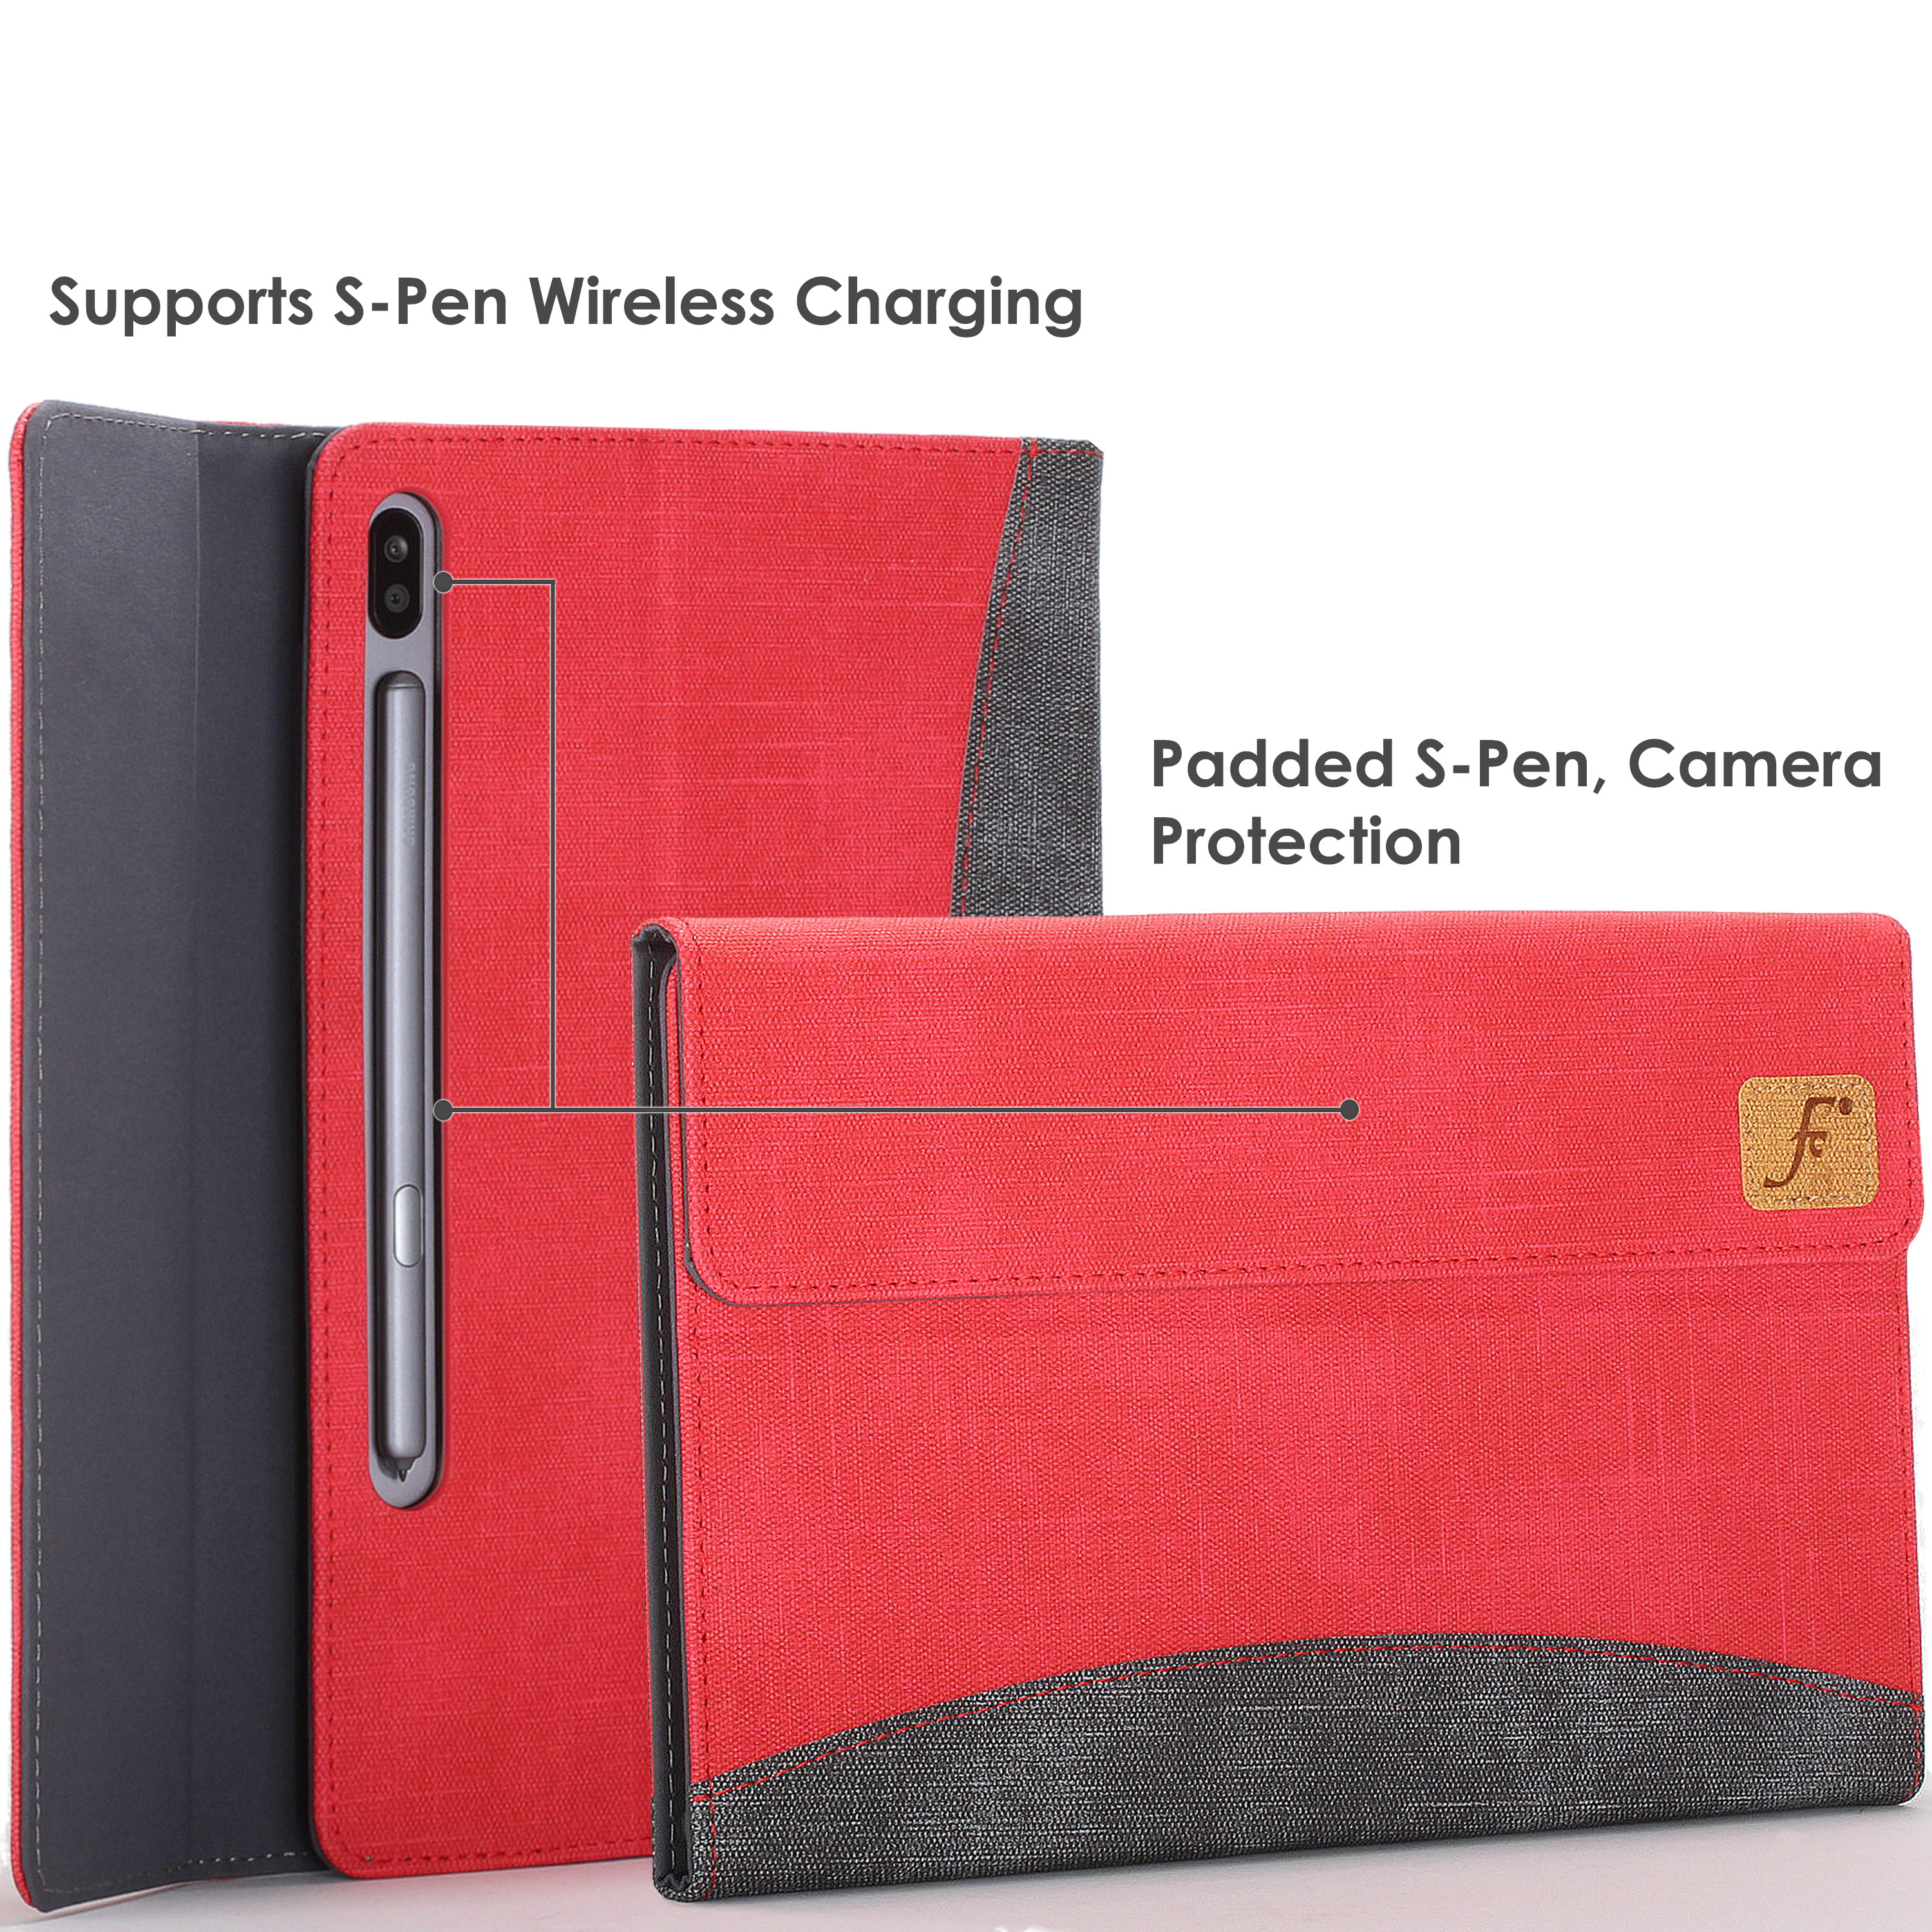 Samsung-Galaxy-Tab-S6-10-5-Case-Cover-Stand-with-Document-Pocket-amp-Sleep-Wake thumbnail 19